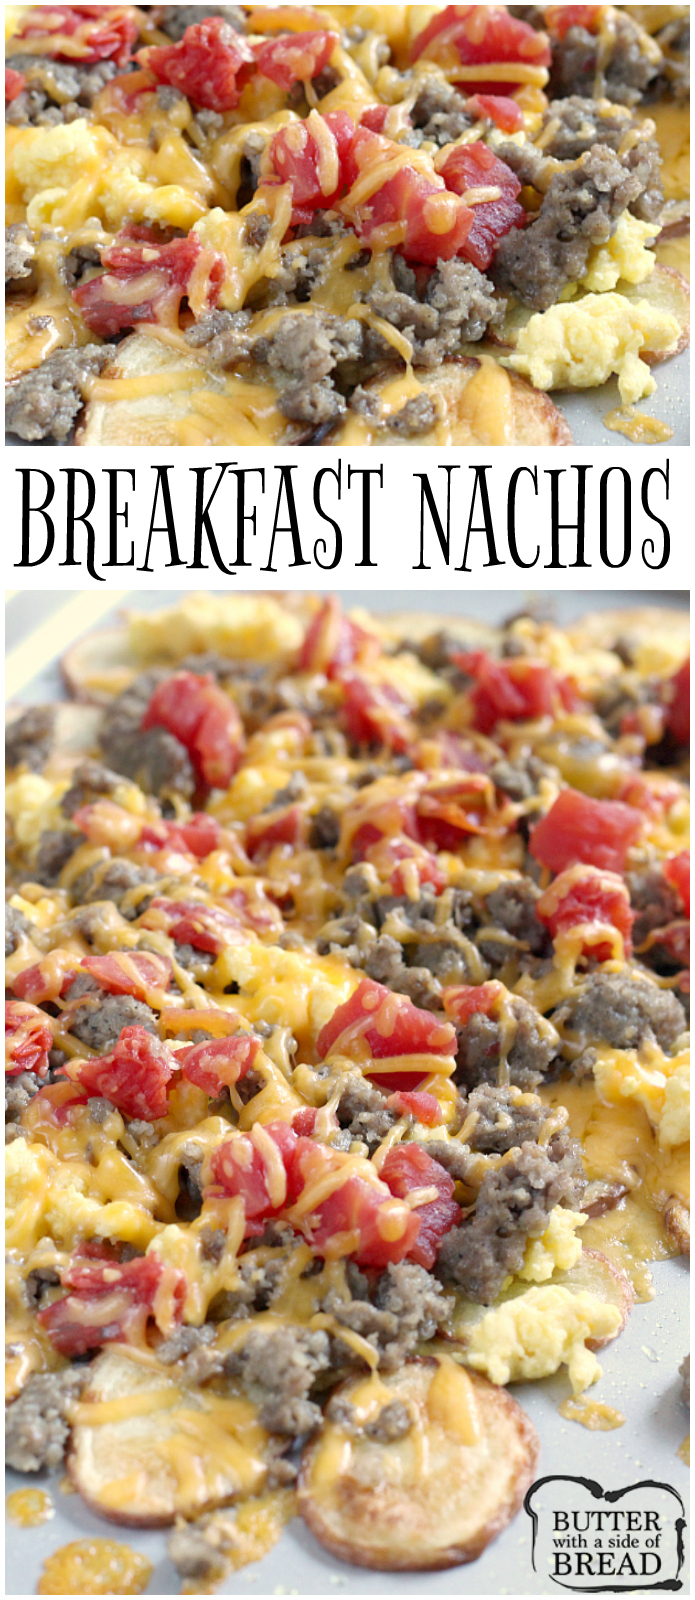 Easy Breakfast Nachos are perfect for breakfast, but also make a wonderful lunch or dinner too! Thinly sliced roasted potatoes topped with sausage, scrambled eggs, cheese and tomatoes - an easy meal that can be ready in 30 minutes!